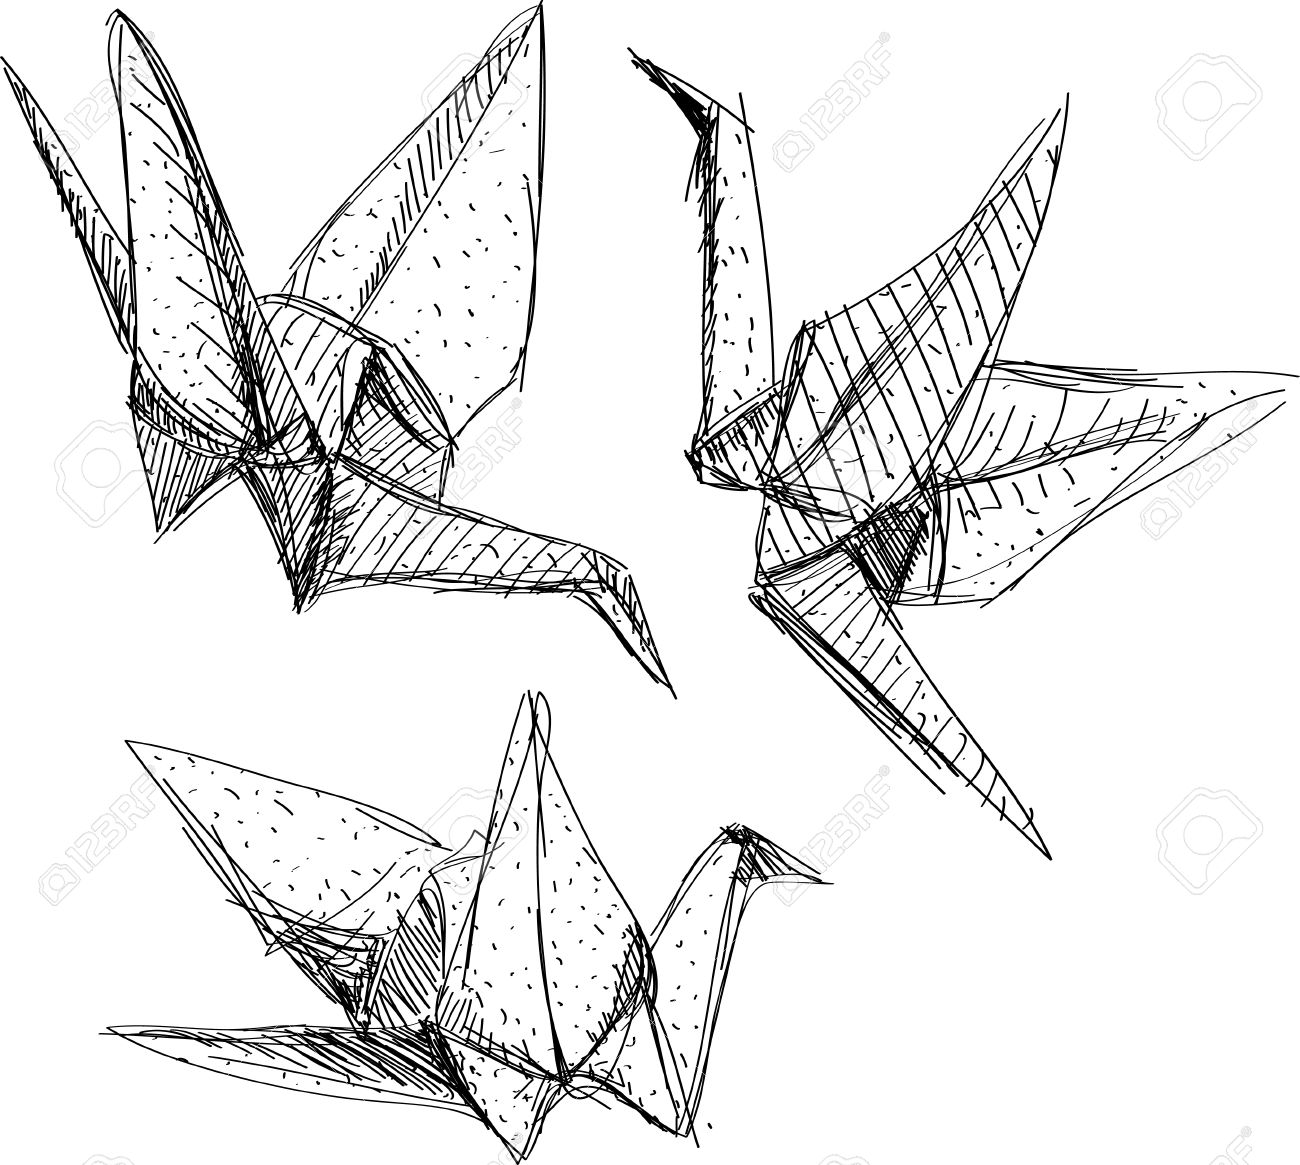 Origami Paper Cranes Set Sketch The Black Line On White Background